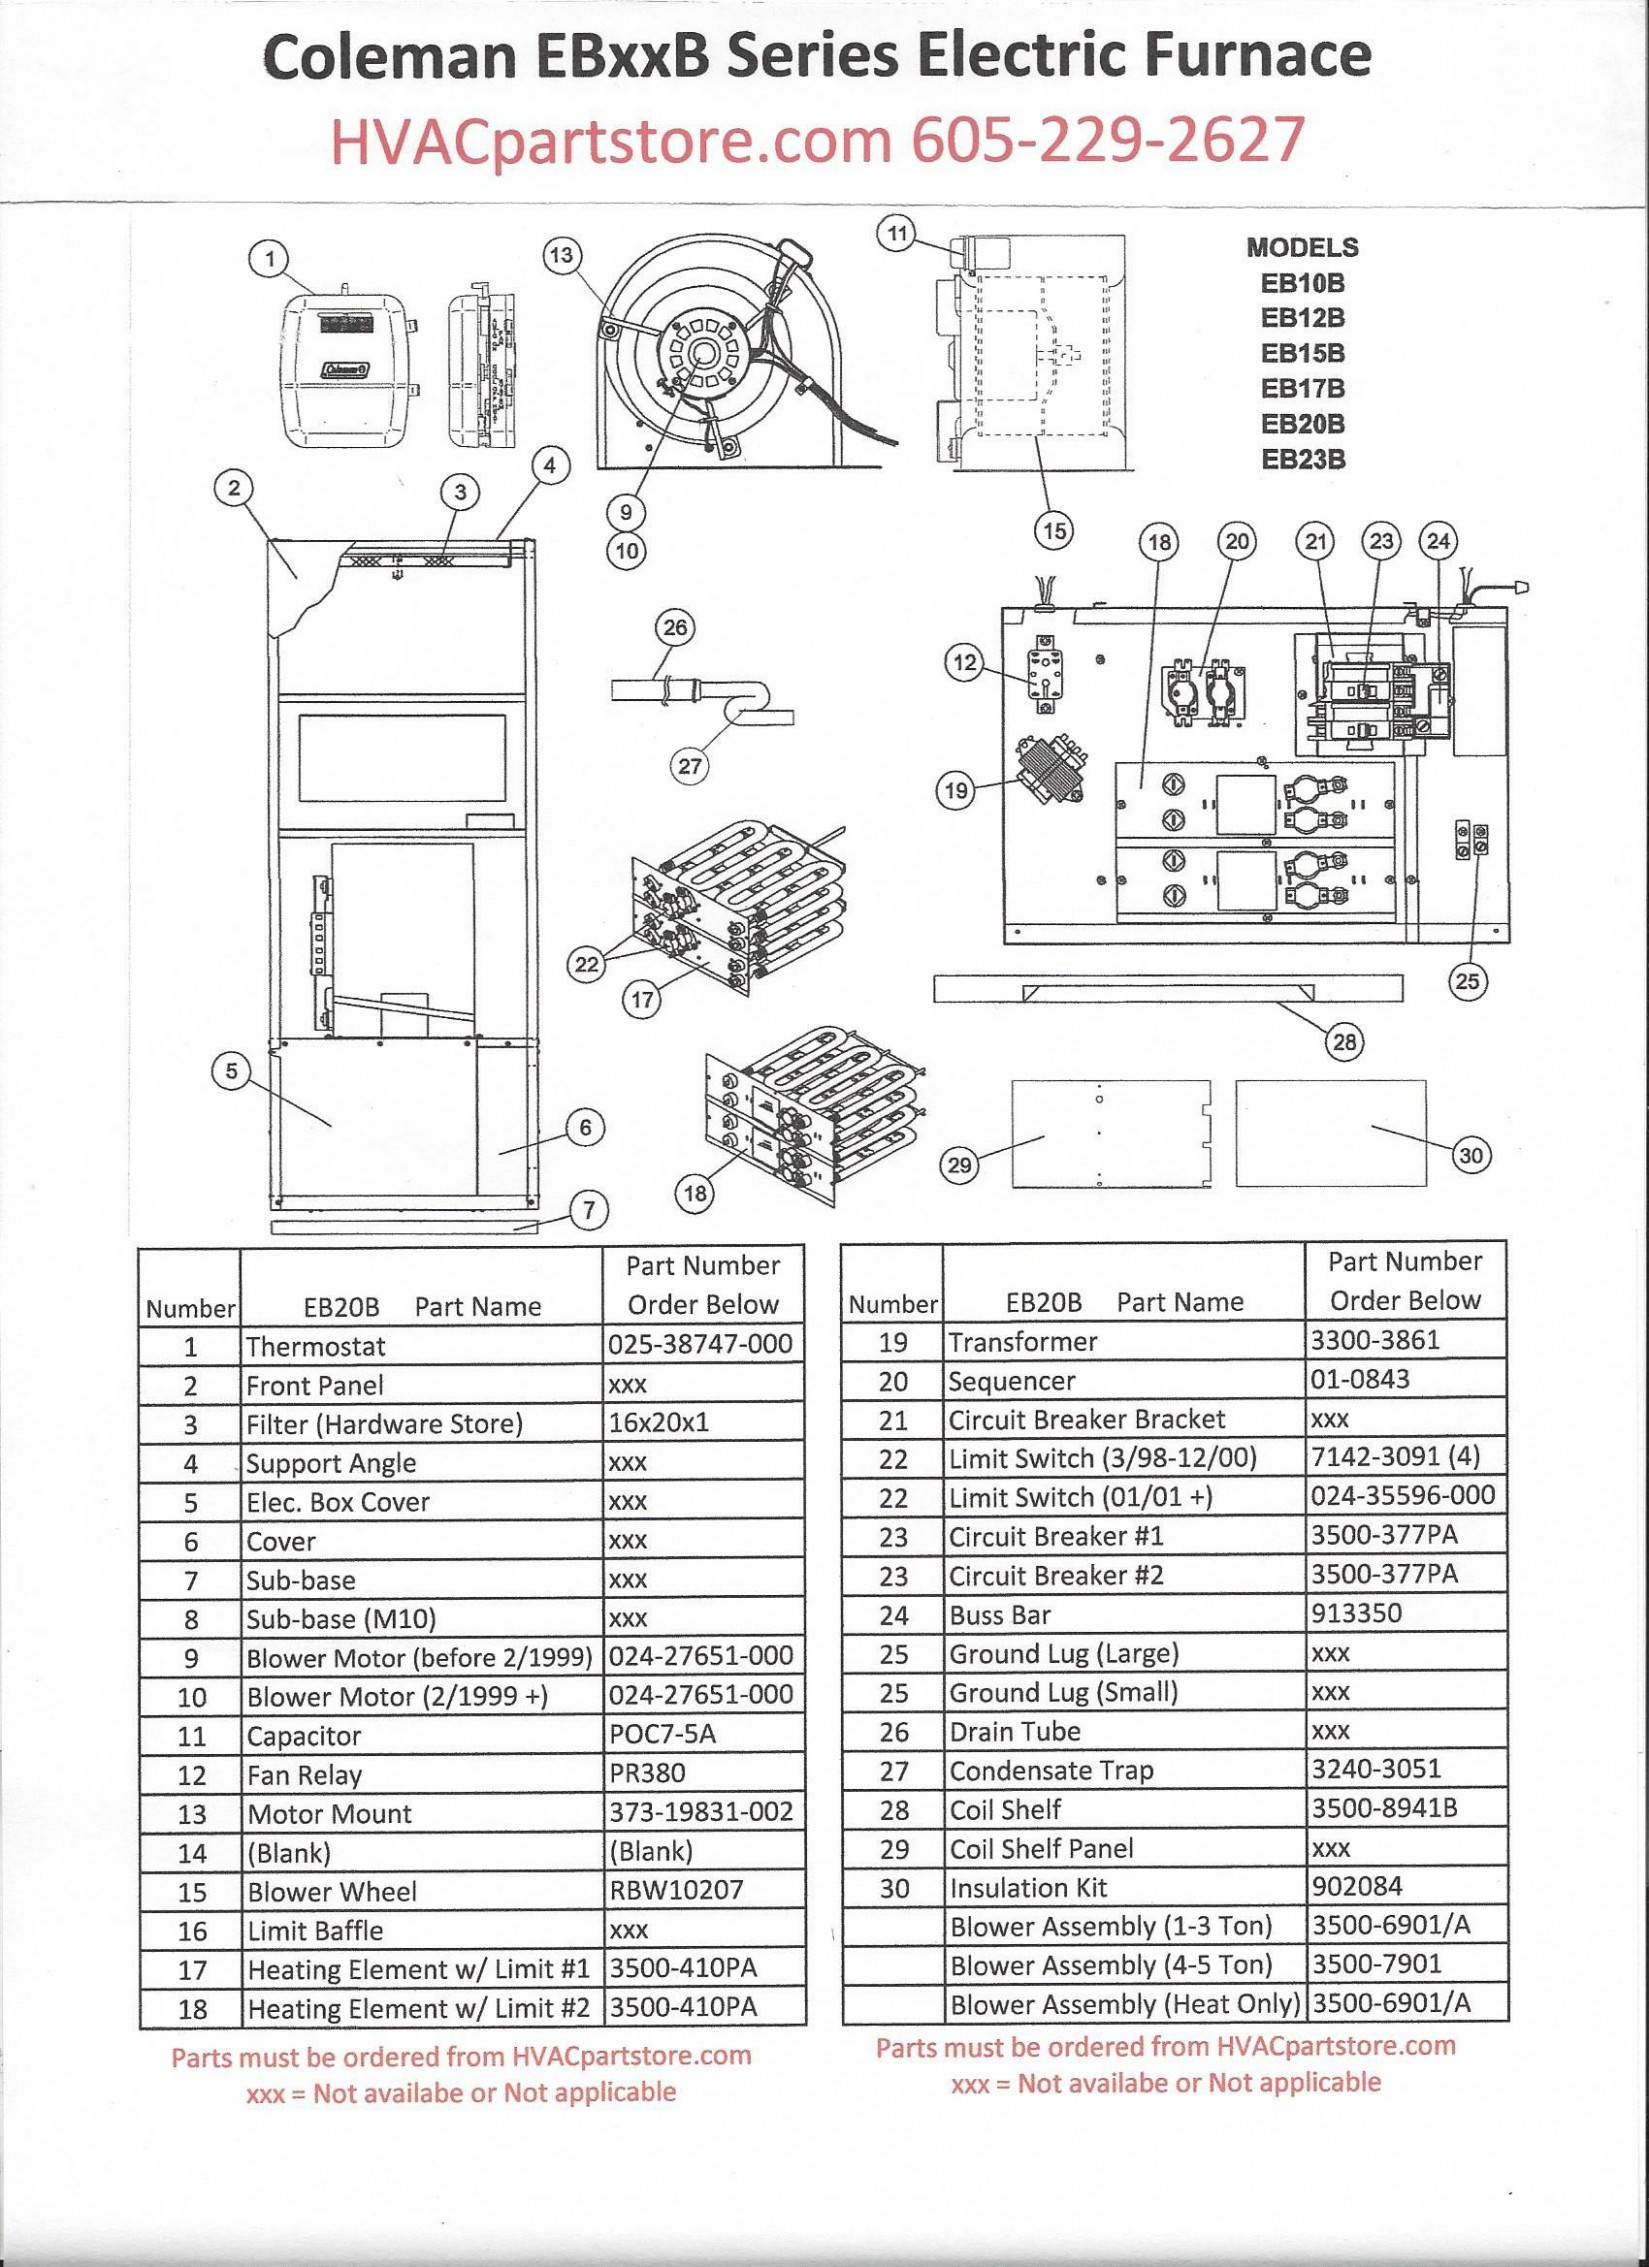 Coleman Evcon Wiring Diagram - DIY Enthusiasts Wiring Diagrams • on coleman eb15b electric furnace diagram, coleman 7900 furnace parts, coleman evcon wiring-diagram,